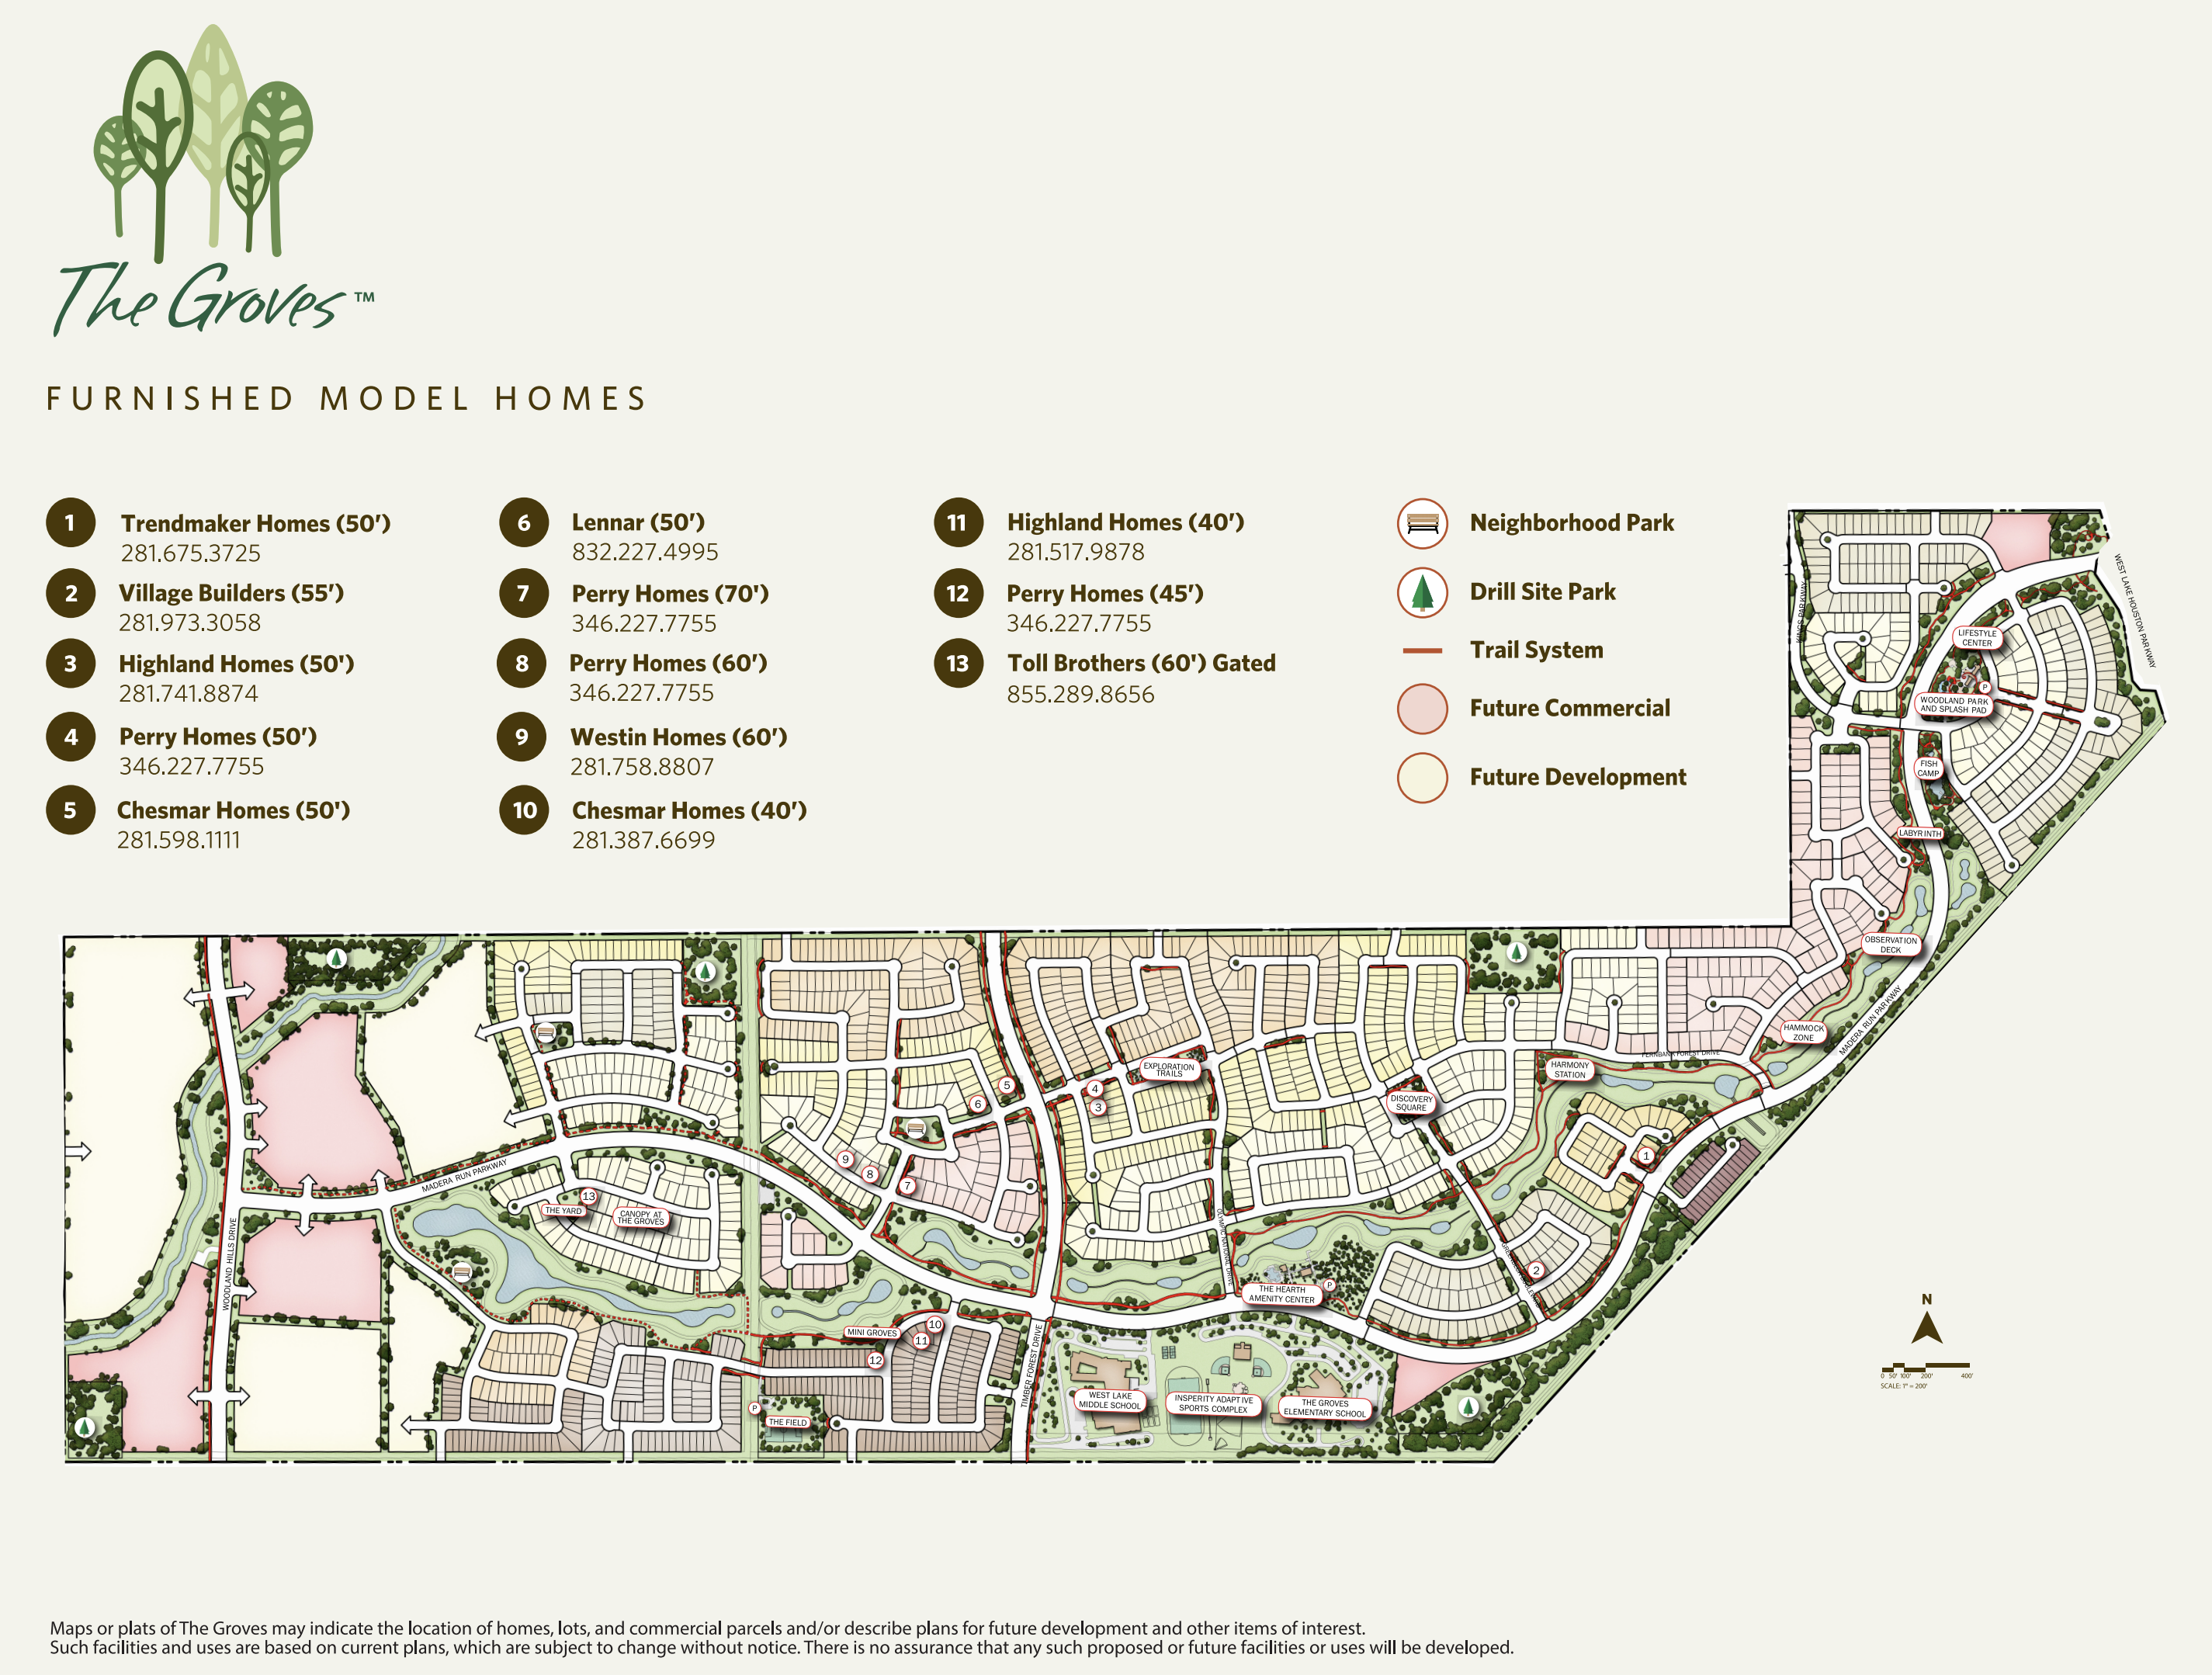 map_of_the_groves_in_humble_houston_texas